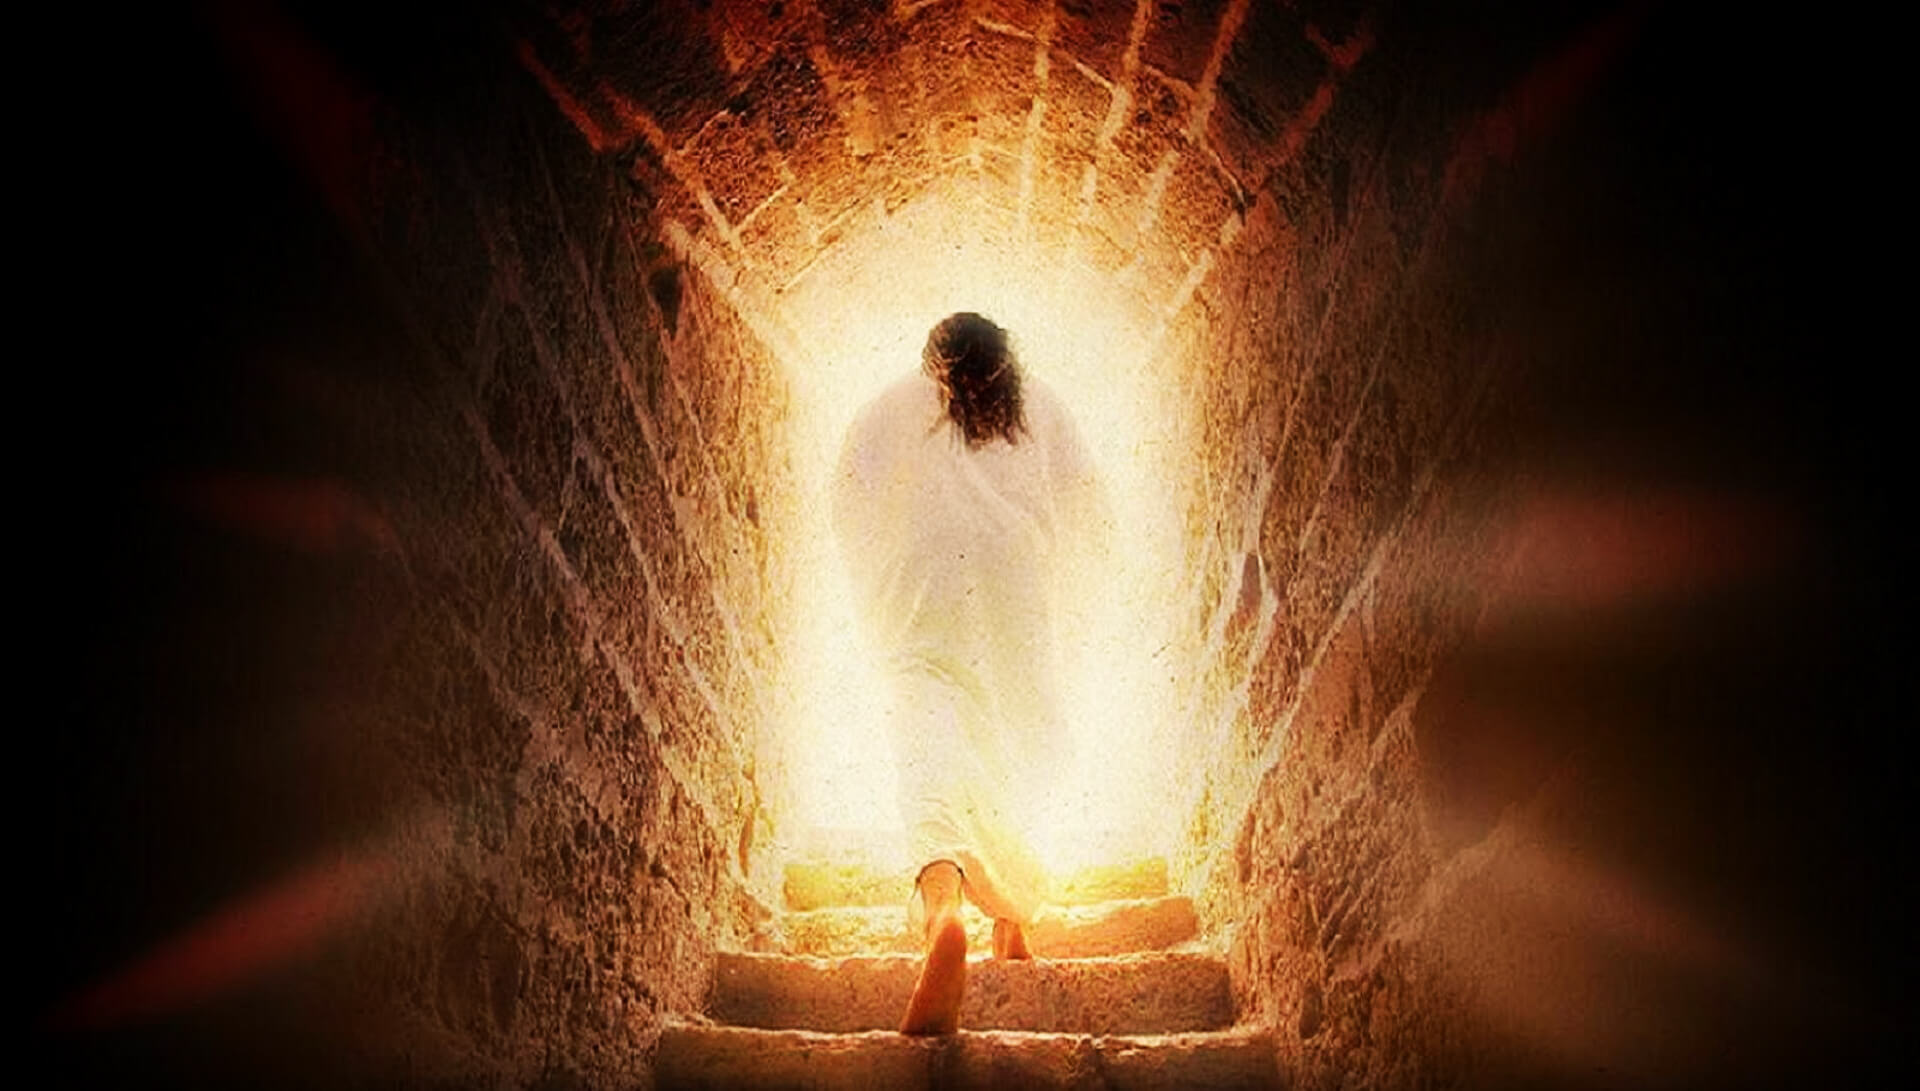 happy easter jesus risen resurrection hd wallpaper background